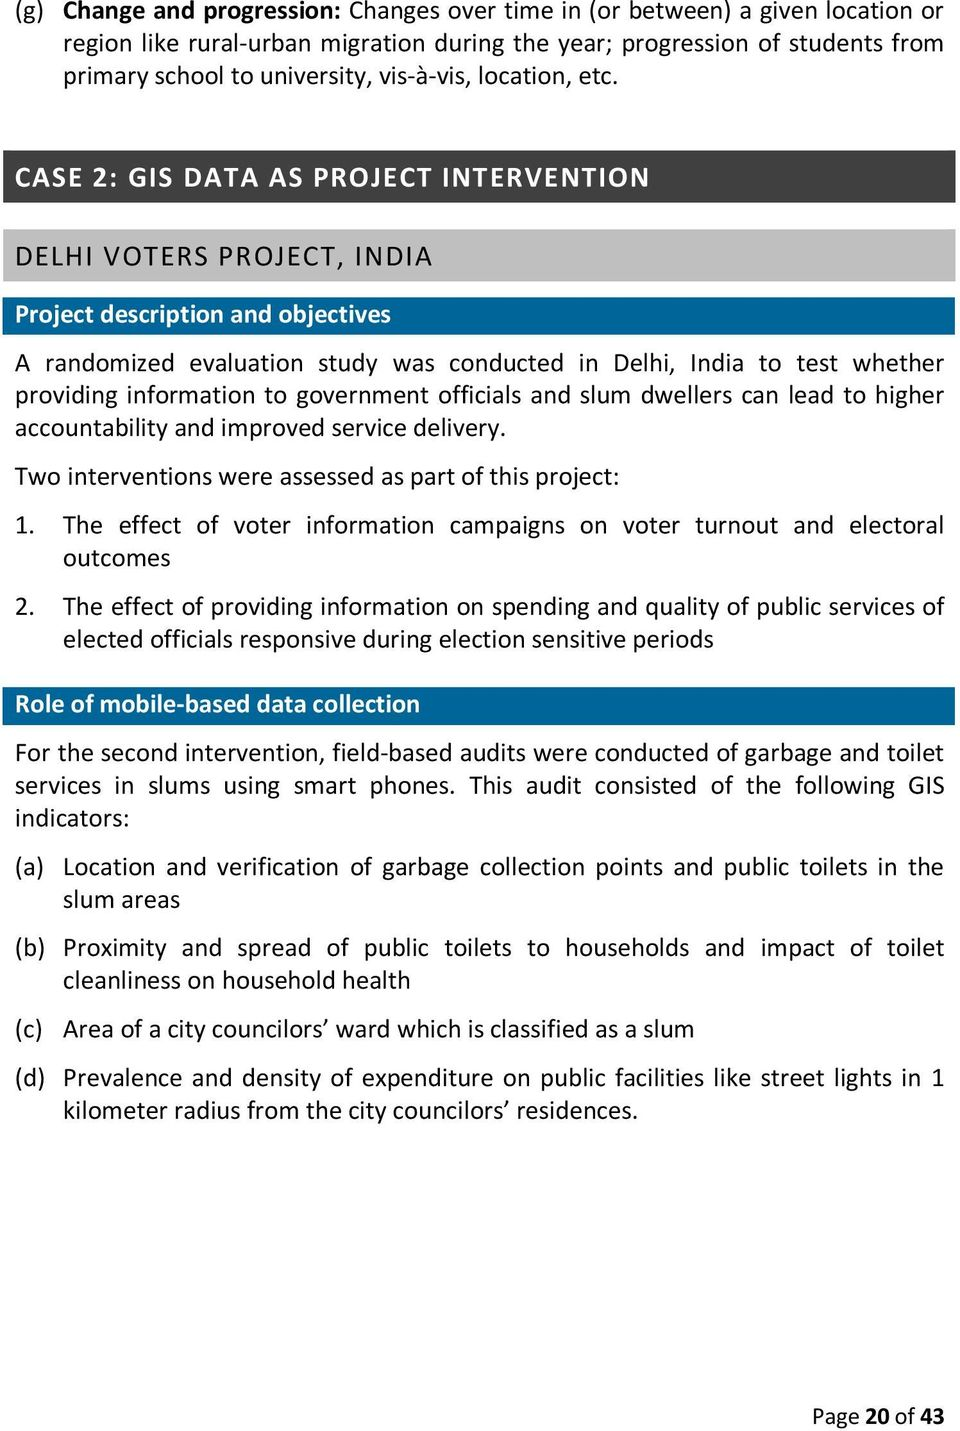 CASE 2: GIS DATA AS PROJECT INTERVENTION DELHI VOTERS PROJECT, INDIA Project description and objectives A randomized evaluation study was conducted in Delhi, India to test whether providing